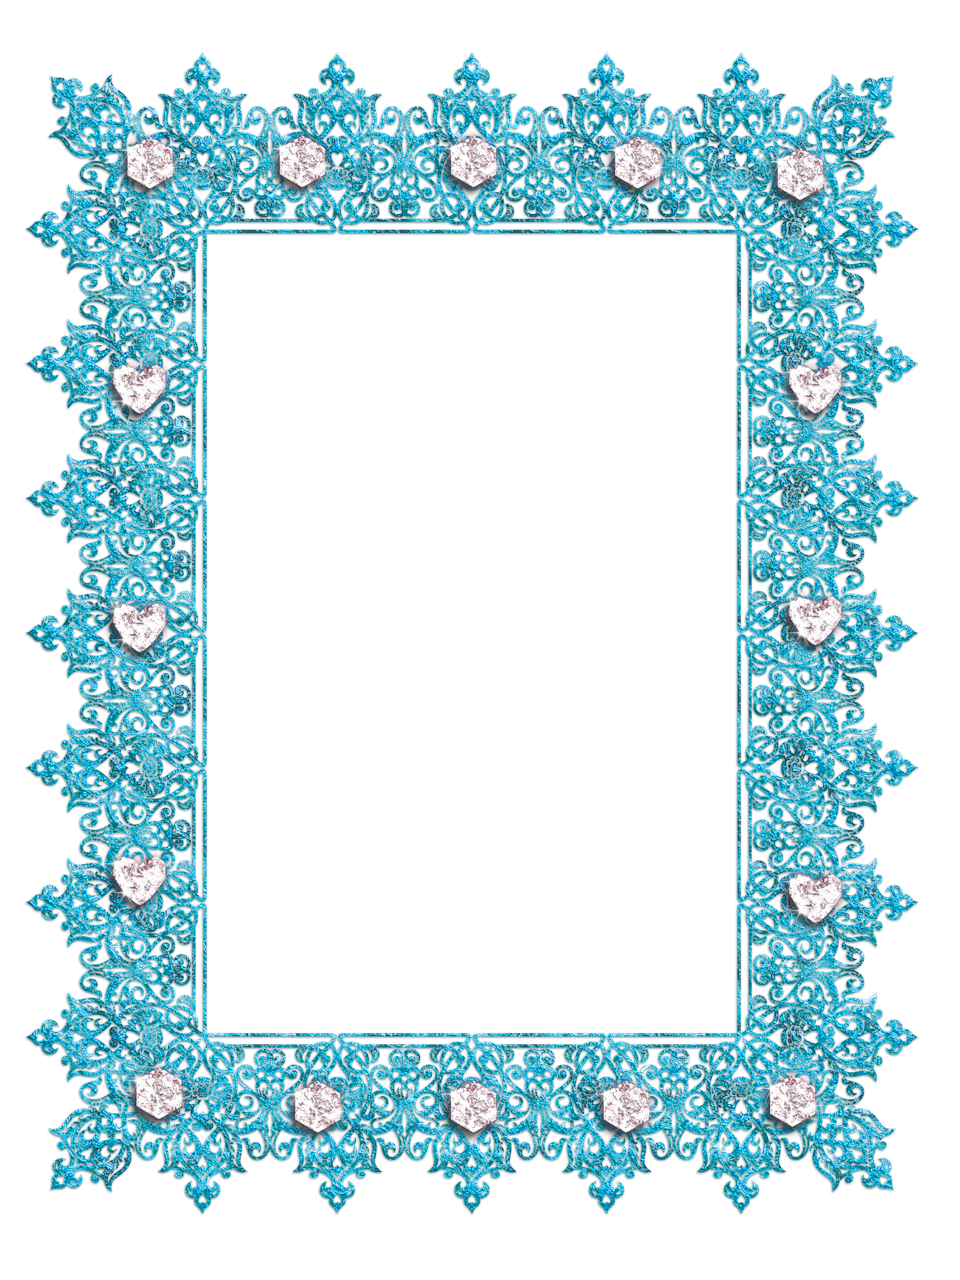 Clipart diamond banner. Blue transparent frame with